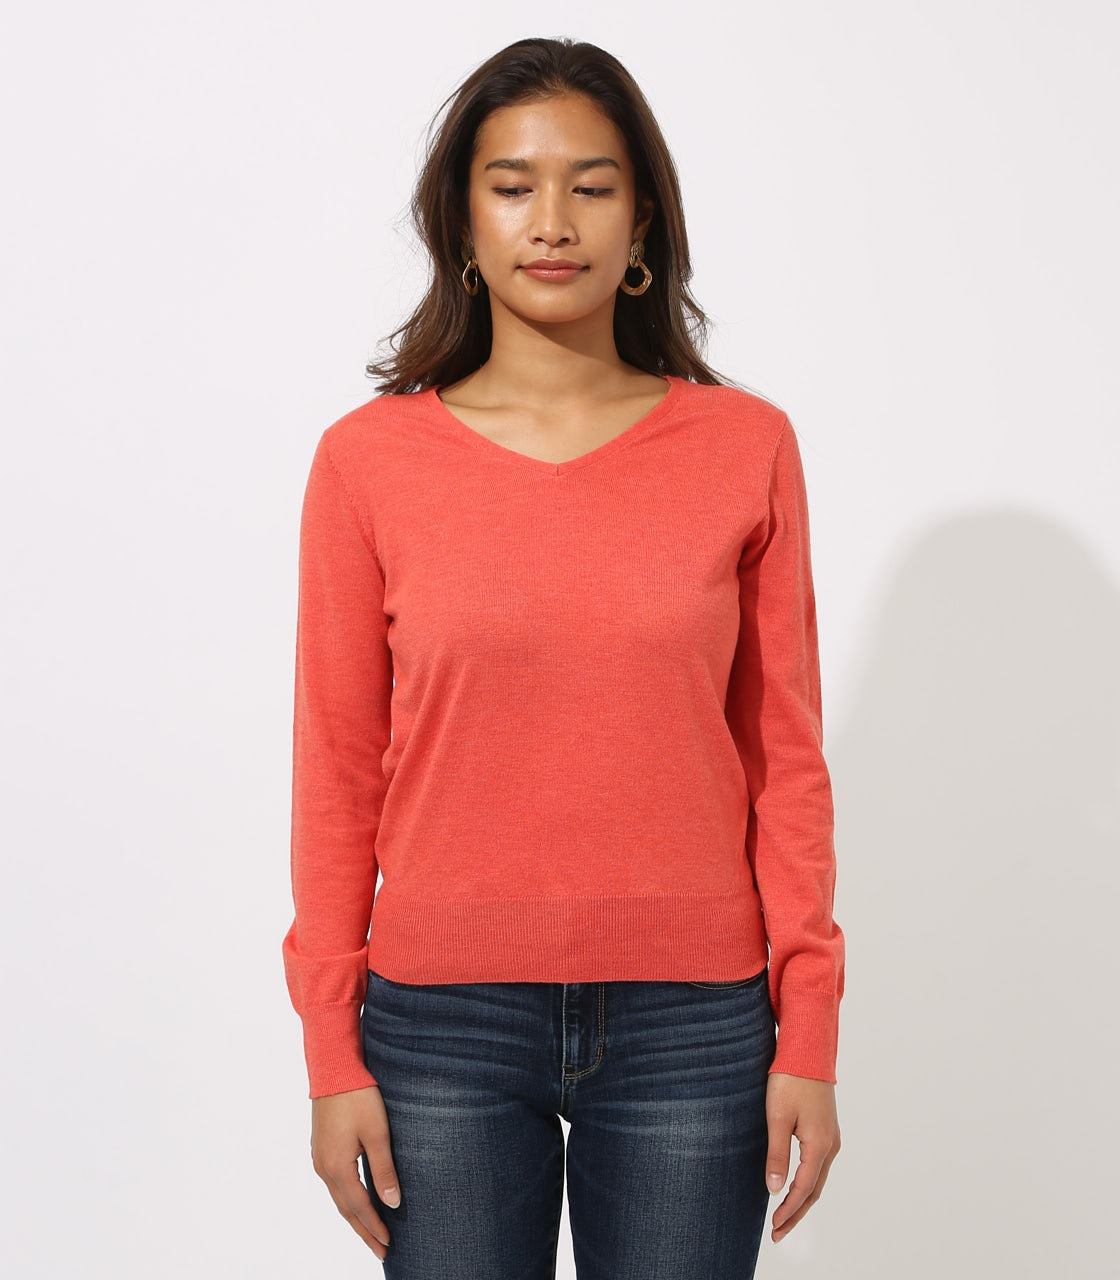 BASIC VNECK KNIT TOPS 詳細画像 L/RED 5